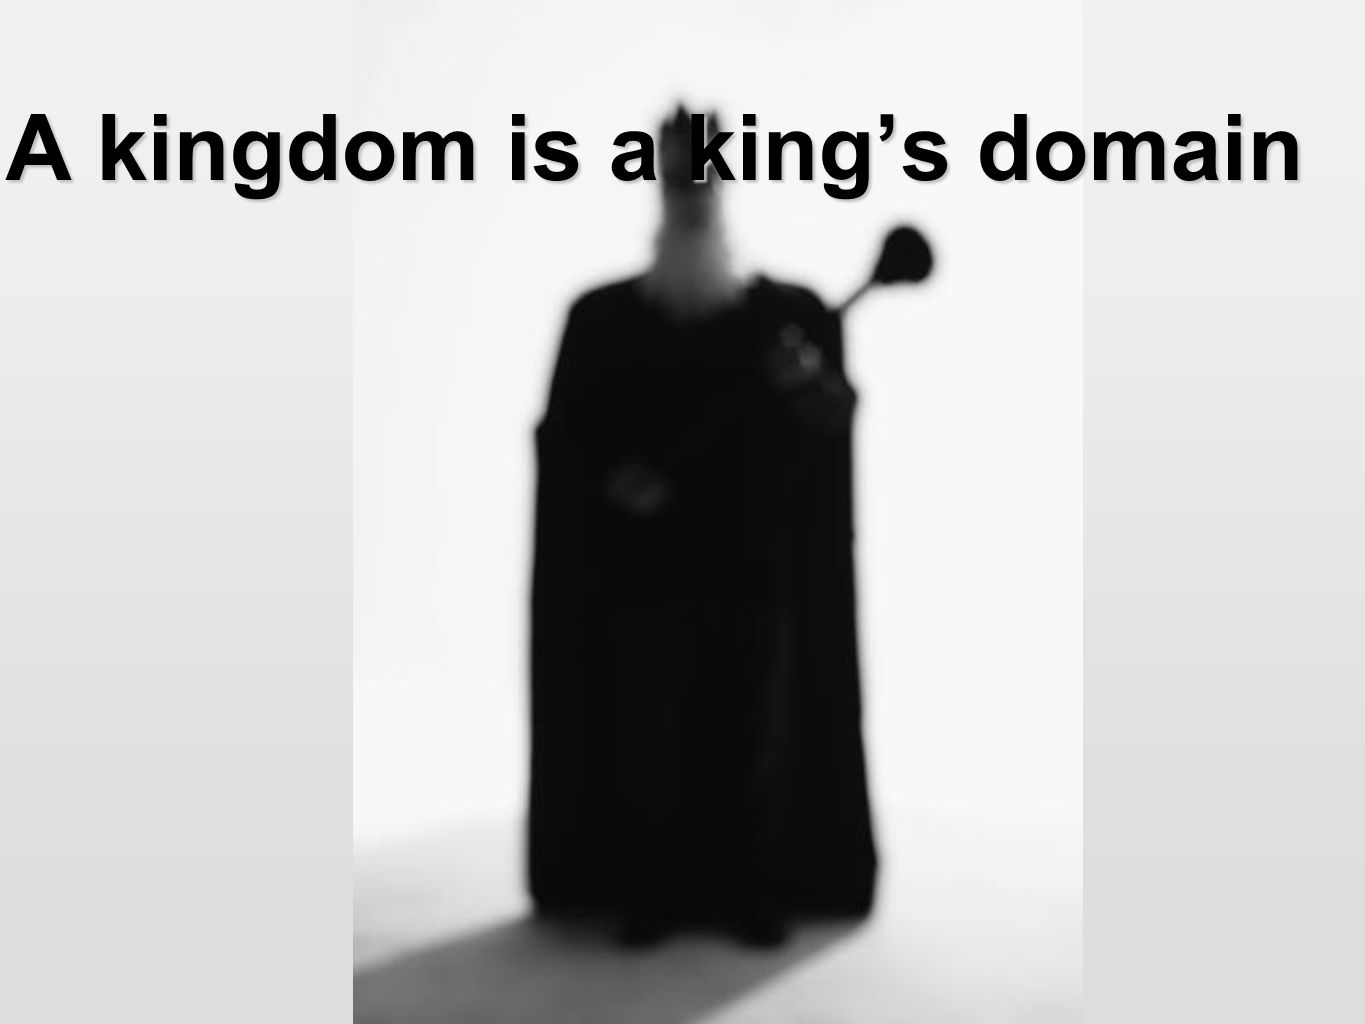 A kingdom is a king's domain